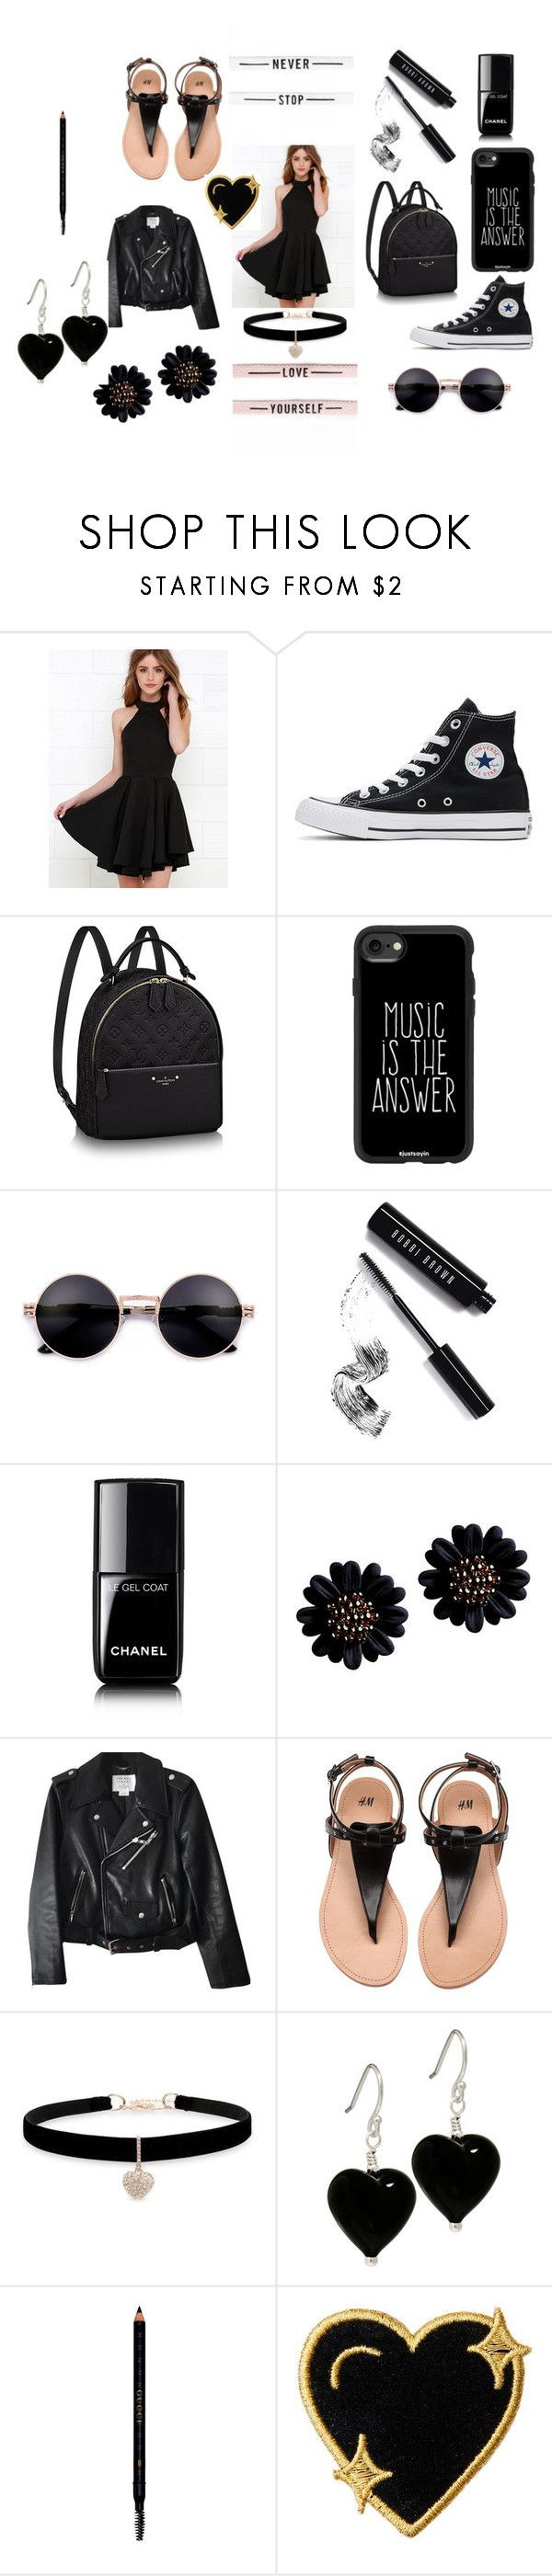 """first date in honeymoon"" by jaz-melendrez ❤ liked on Polyvore featuring Converse, Casetify, Bobbi Brown Cosmetics, Chanel, Kate Spade, Betsey Johnson, Gucci and Stoney Clover Lane"